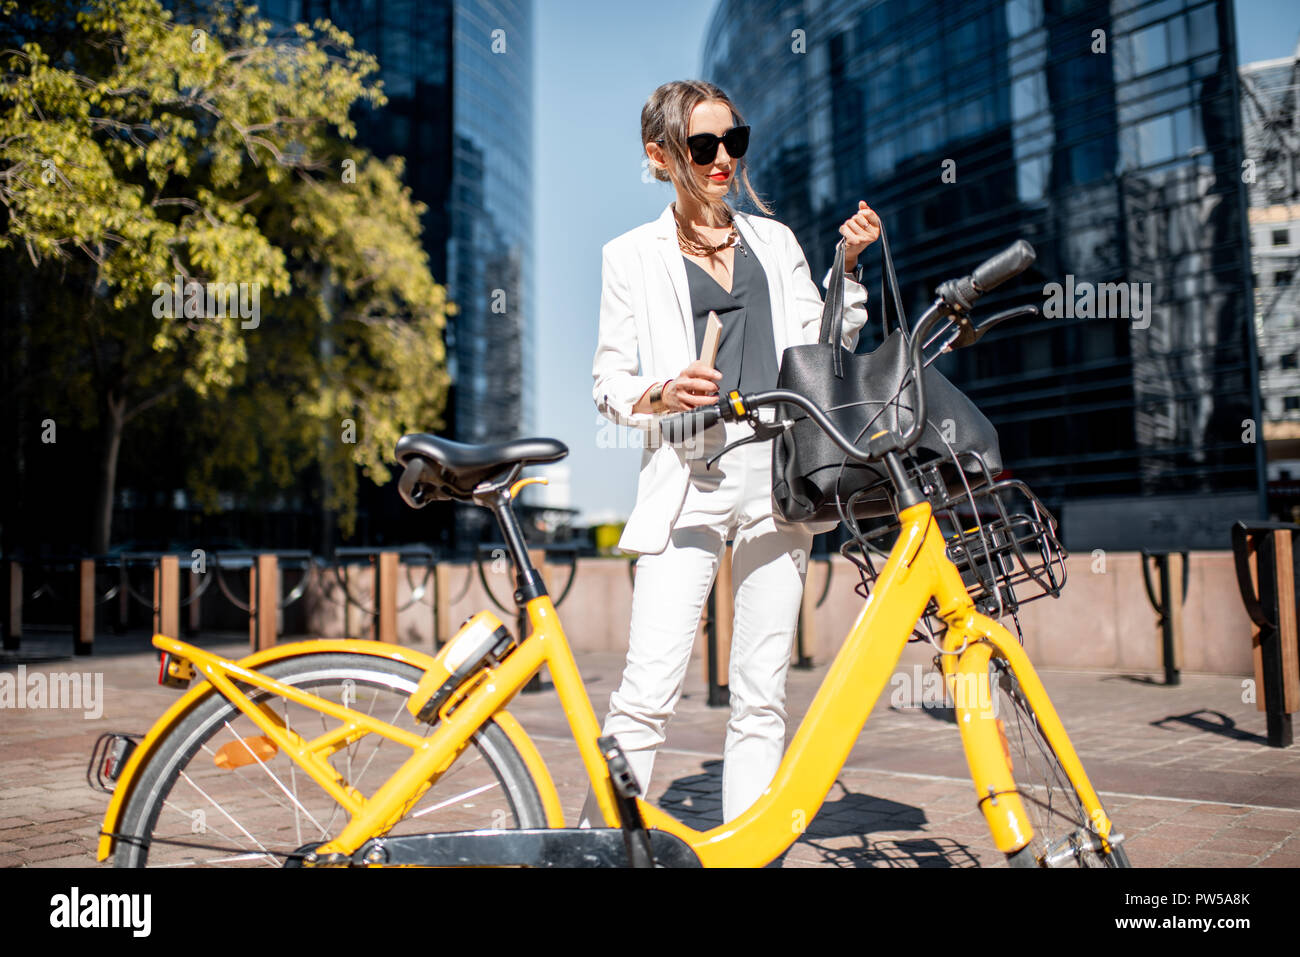 Business woman unlocking public bicycle with smart phone standing at the financial district with skyscrapers on the background Stock Photo